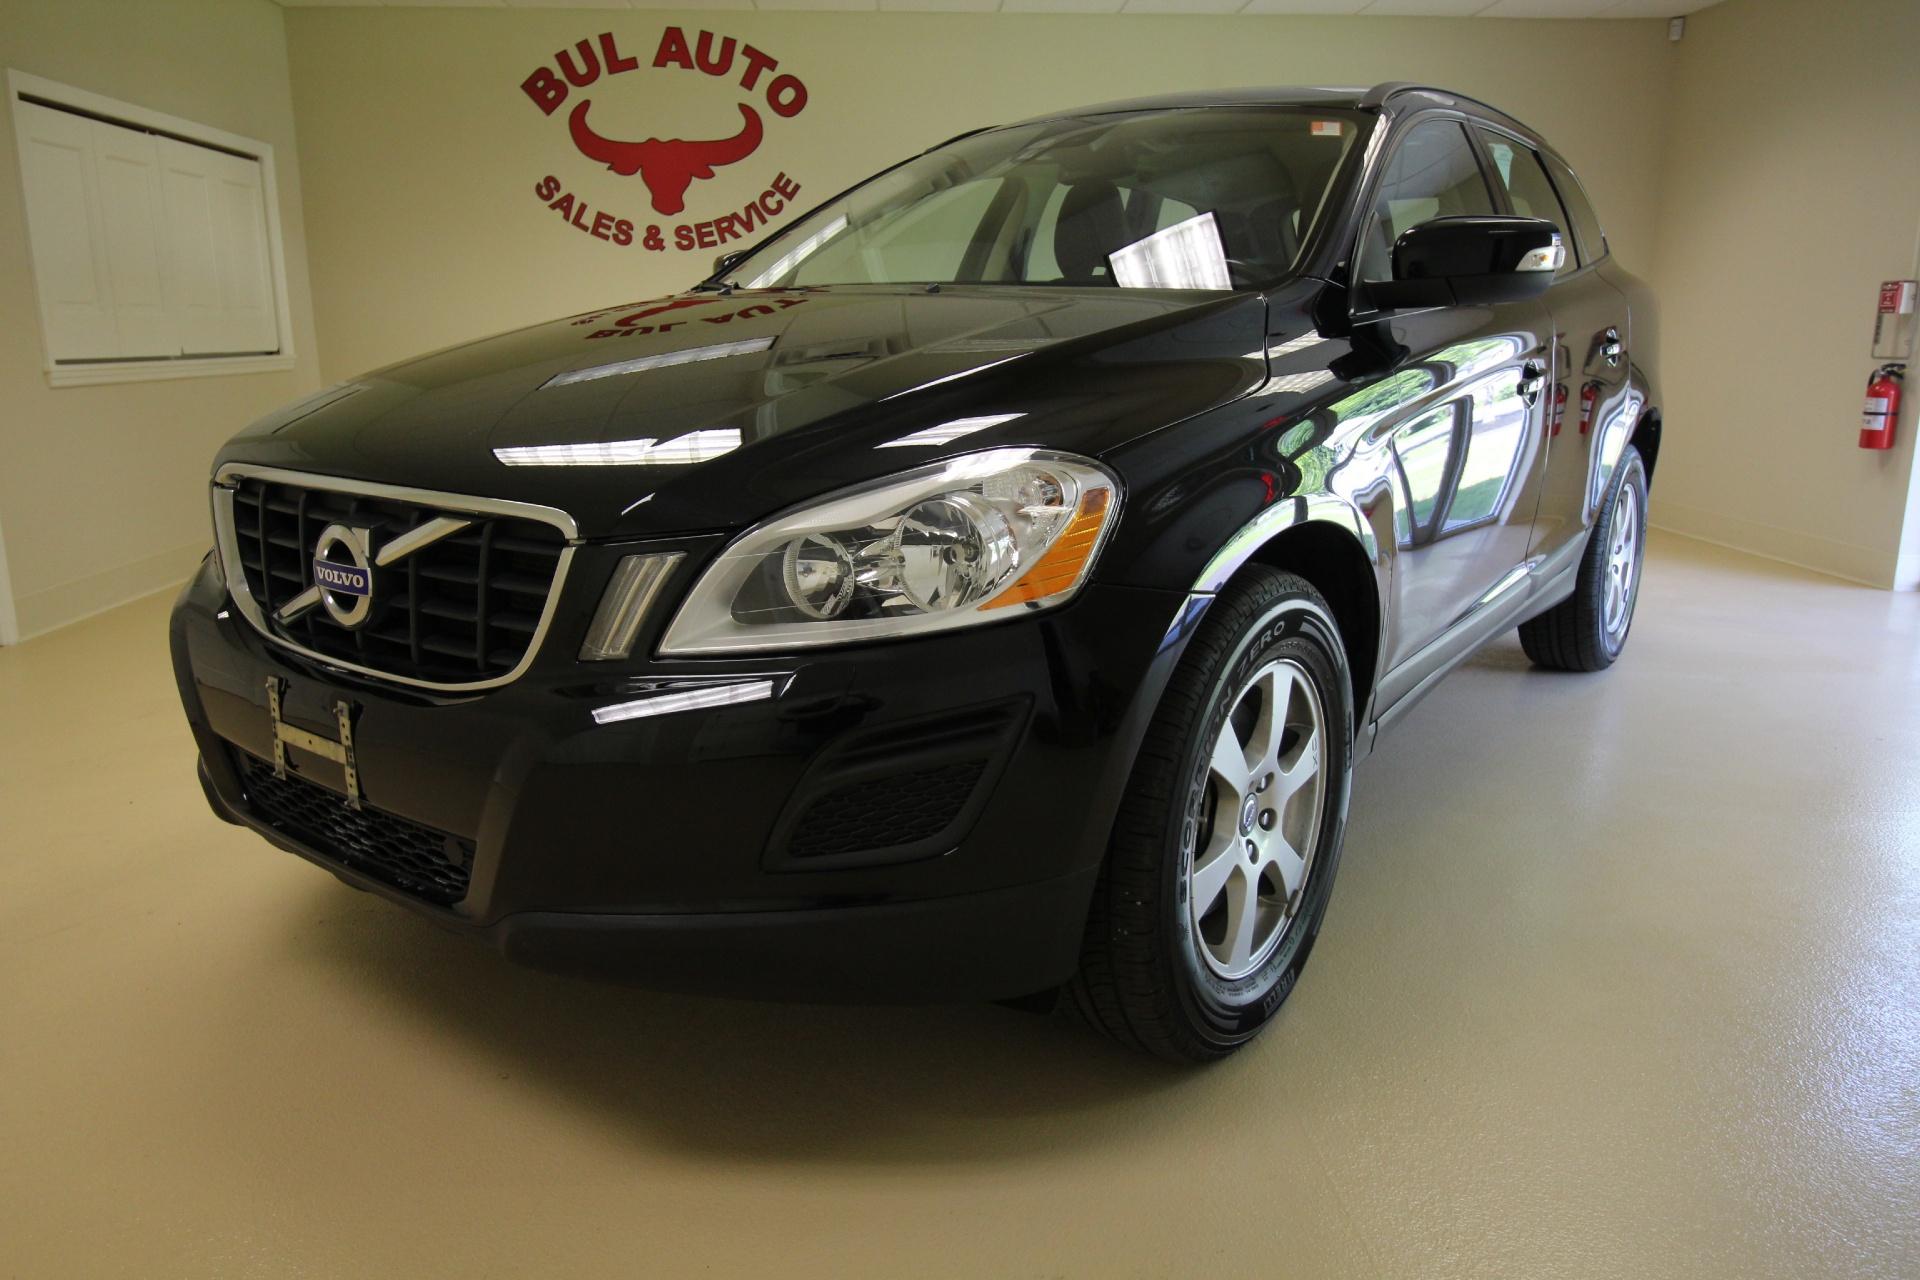 Volvo Albany Ny Bul Auto Sales Pre Owned Luxury Vehicles Used Luxury Cars